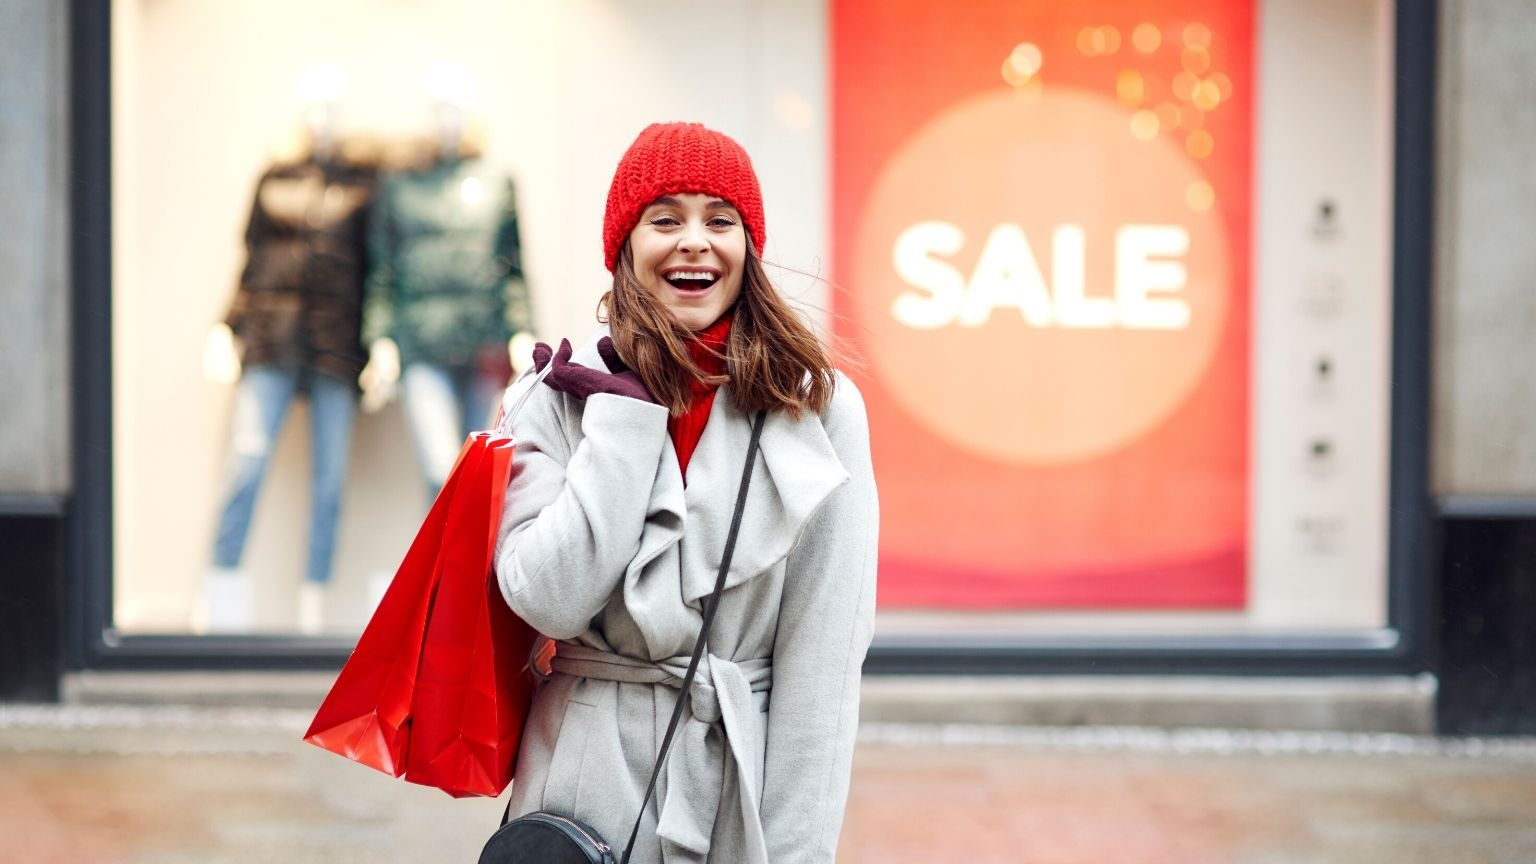 Woman smiling with shopping bags in hand